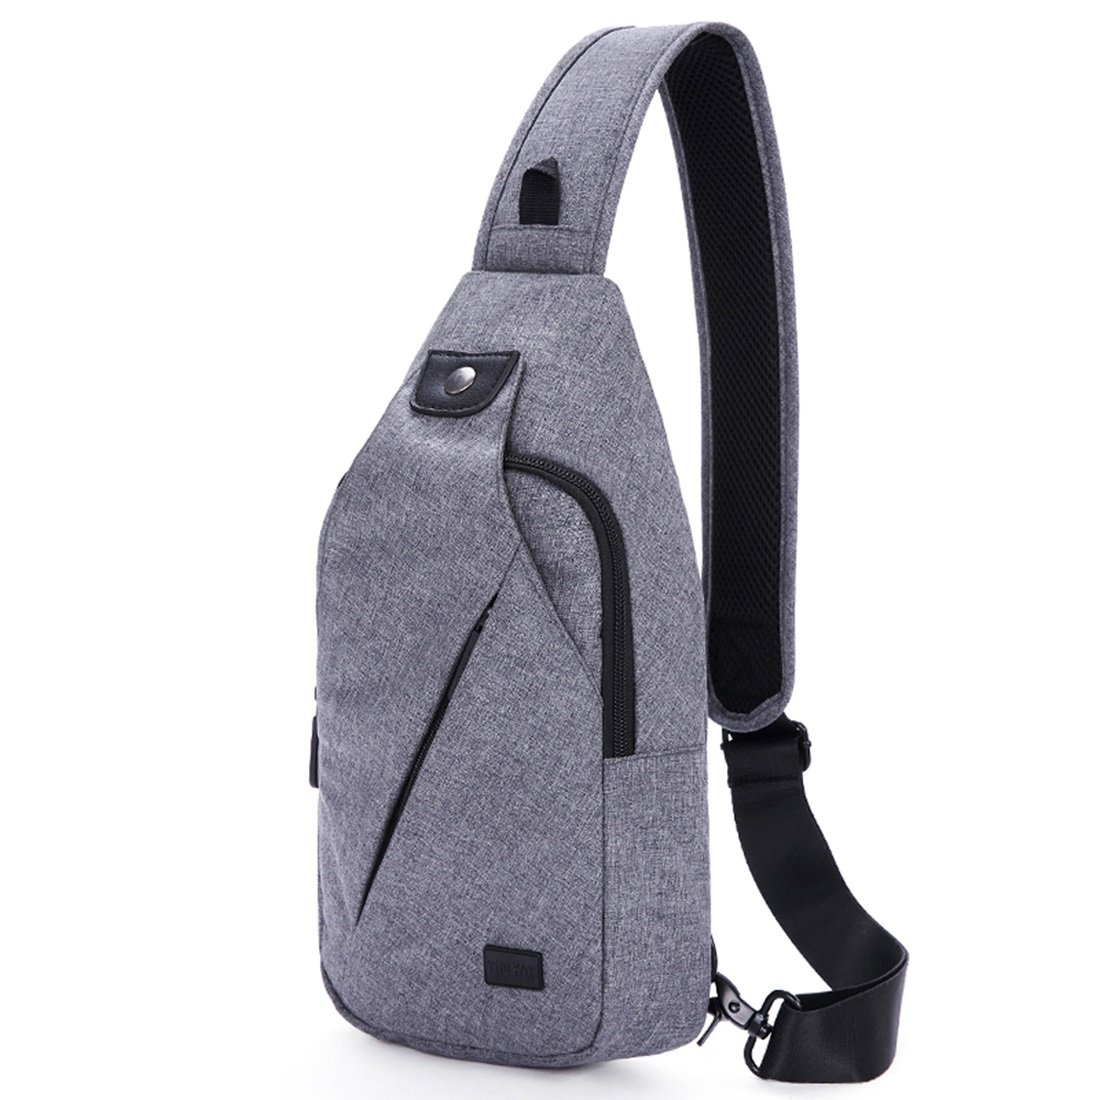 RABILTY Male Chest Bag Leisure Shoulder Canvas Backpack Outdoor Tourism Sports Messenger Color : Gray